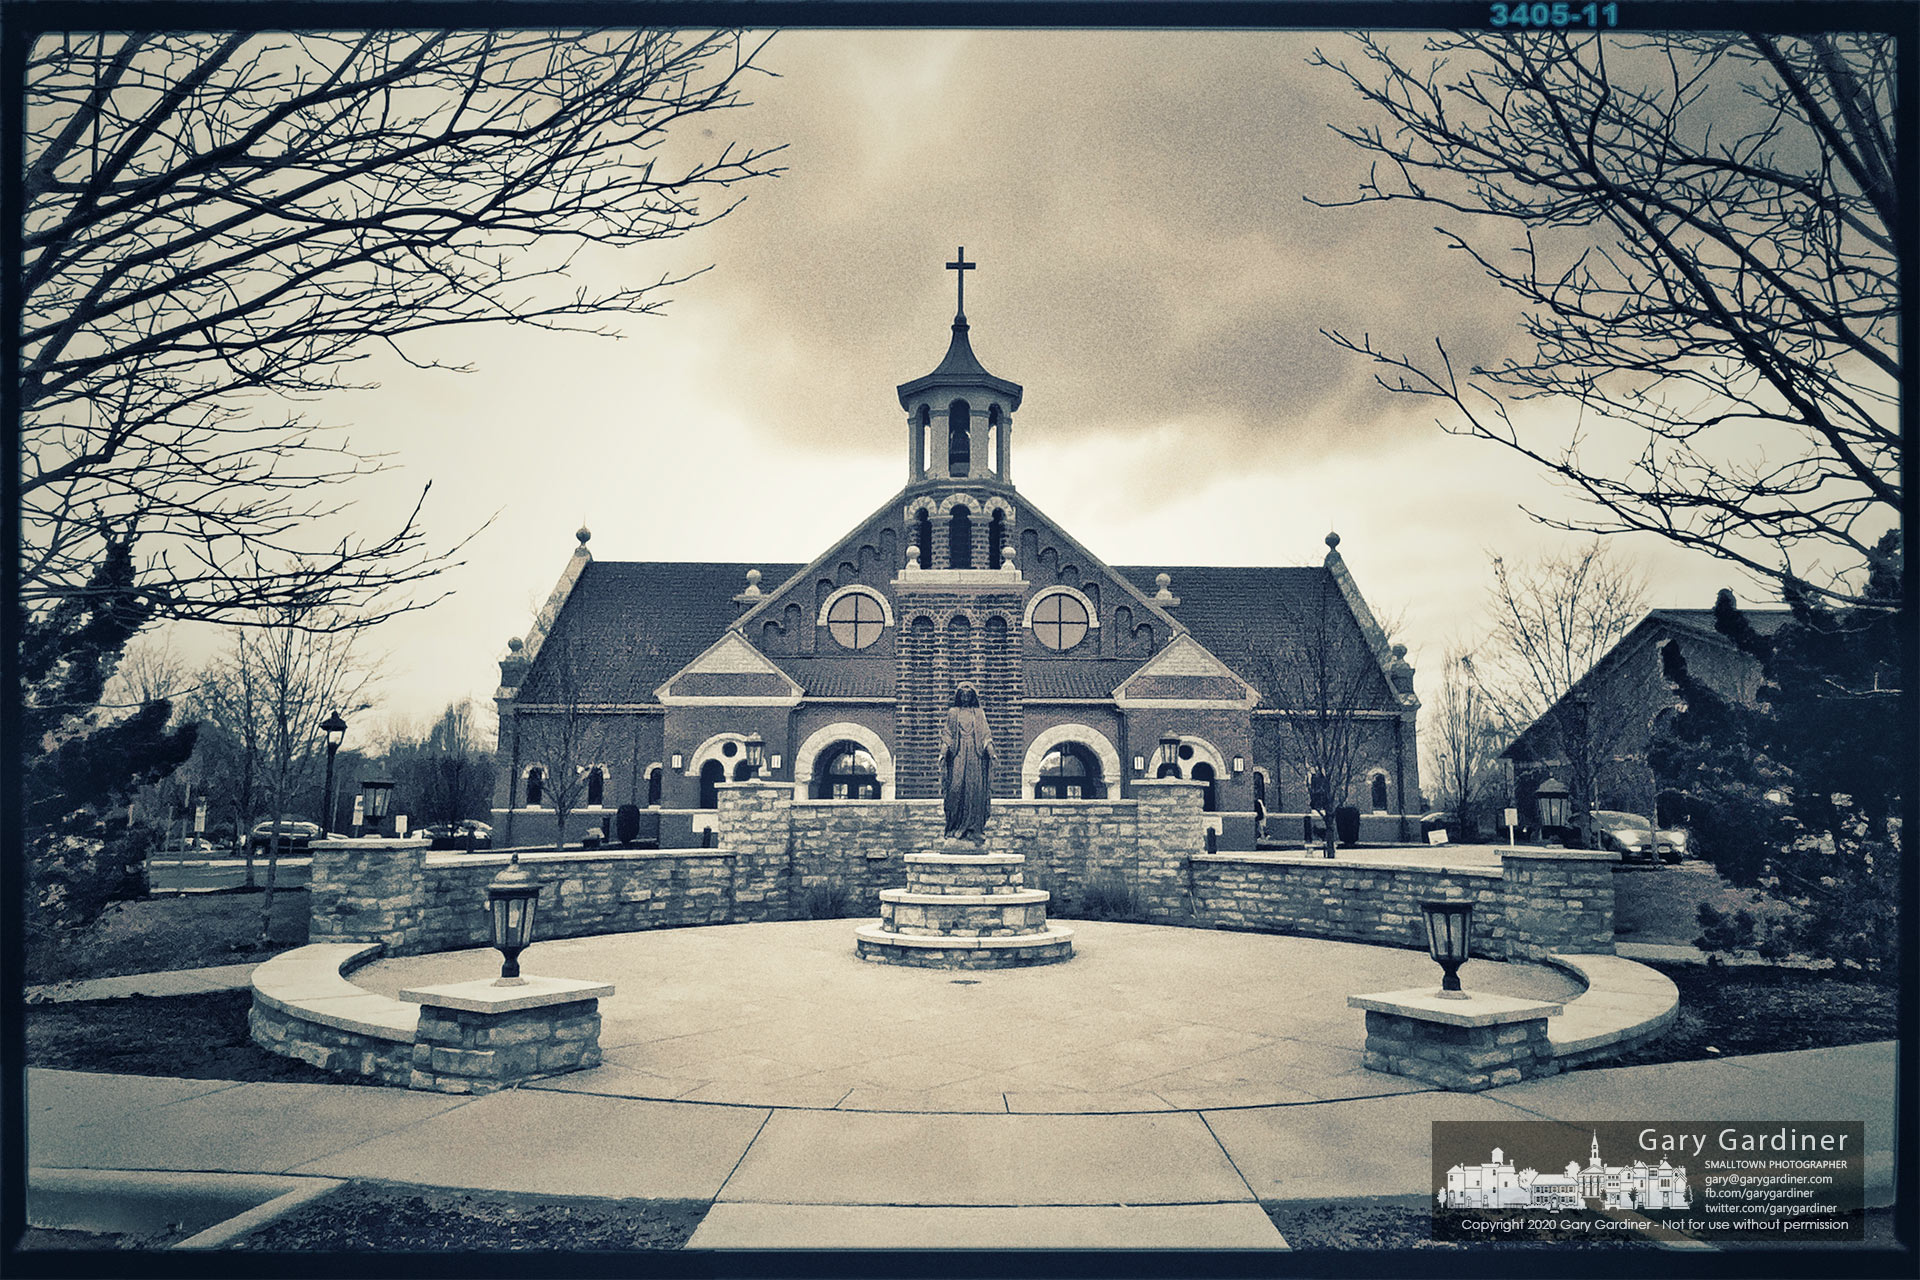 Cloudy skies greet parishioners arriving for the first Mass on Sunday. My Final Photo for Dec. 13, 2020.